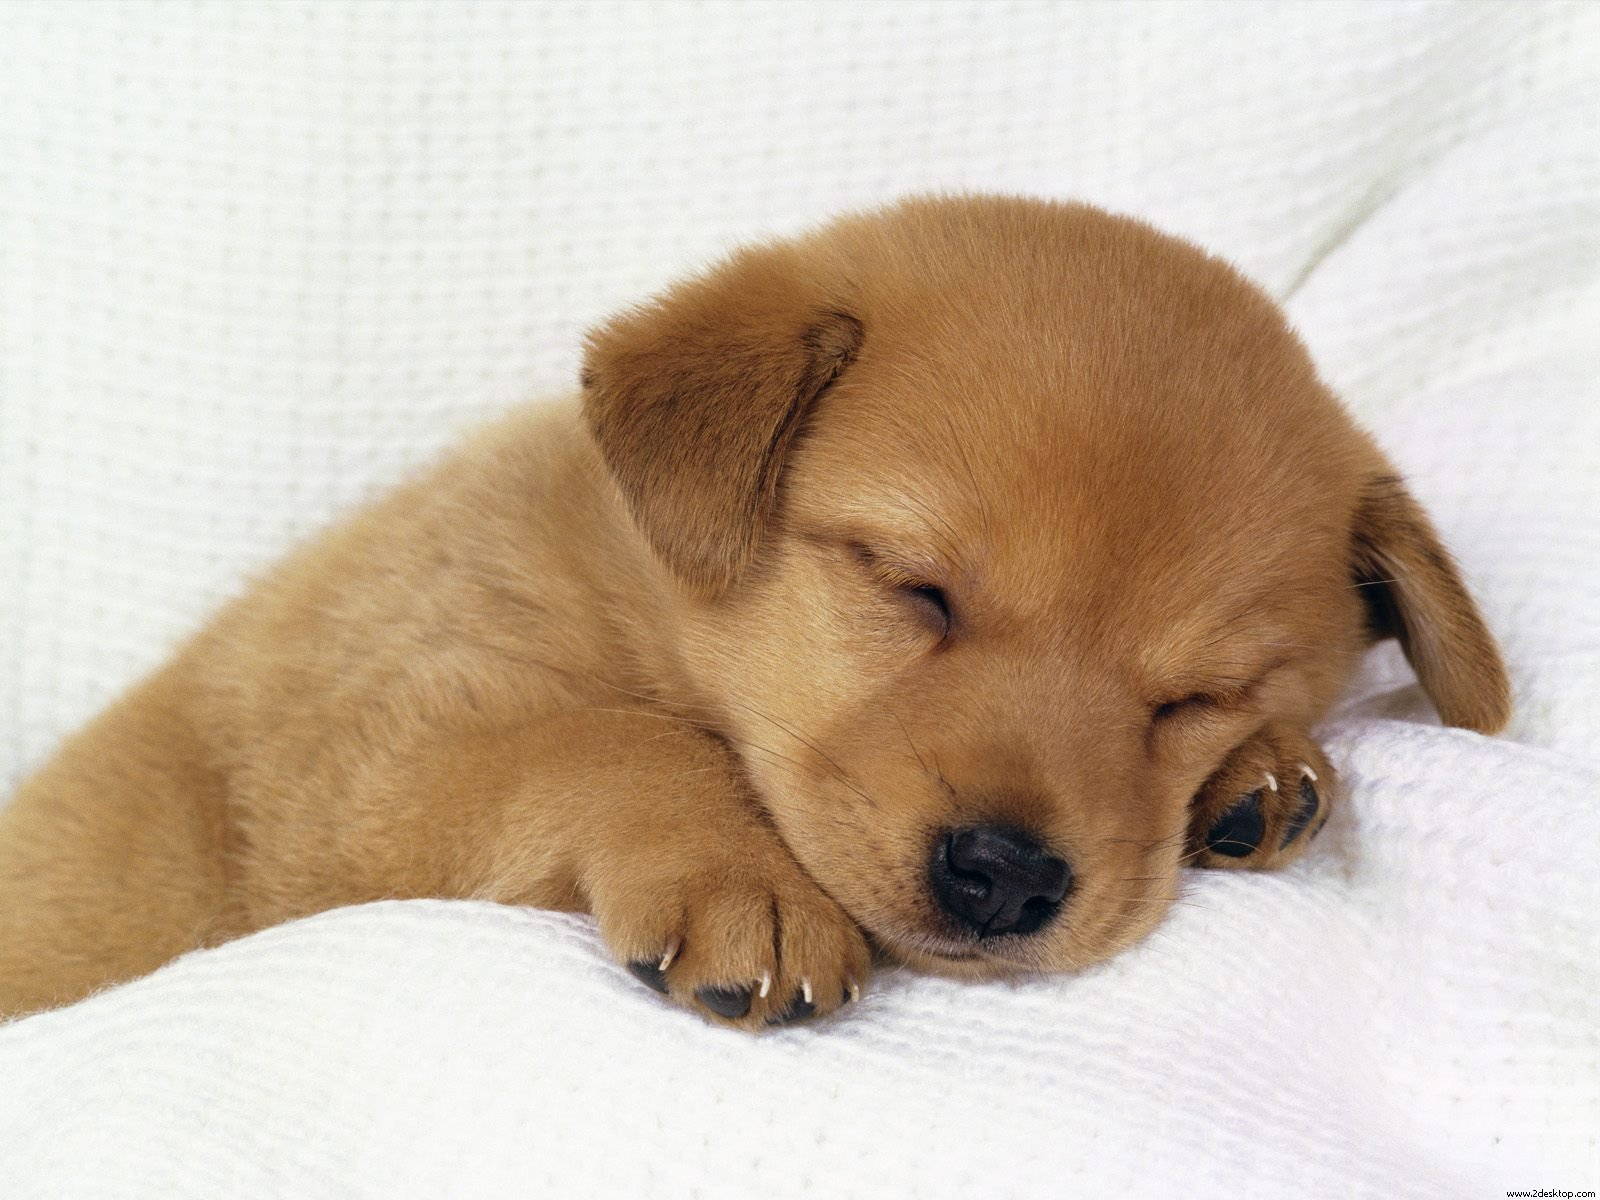 photo of an adorable sleeping puppy